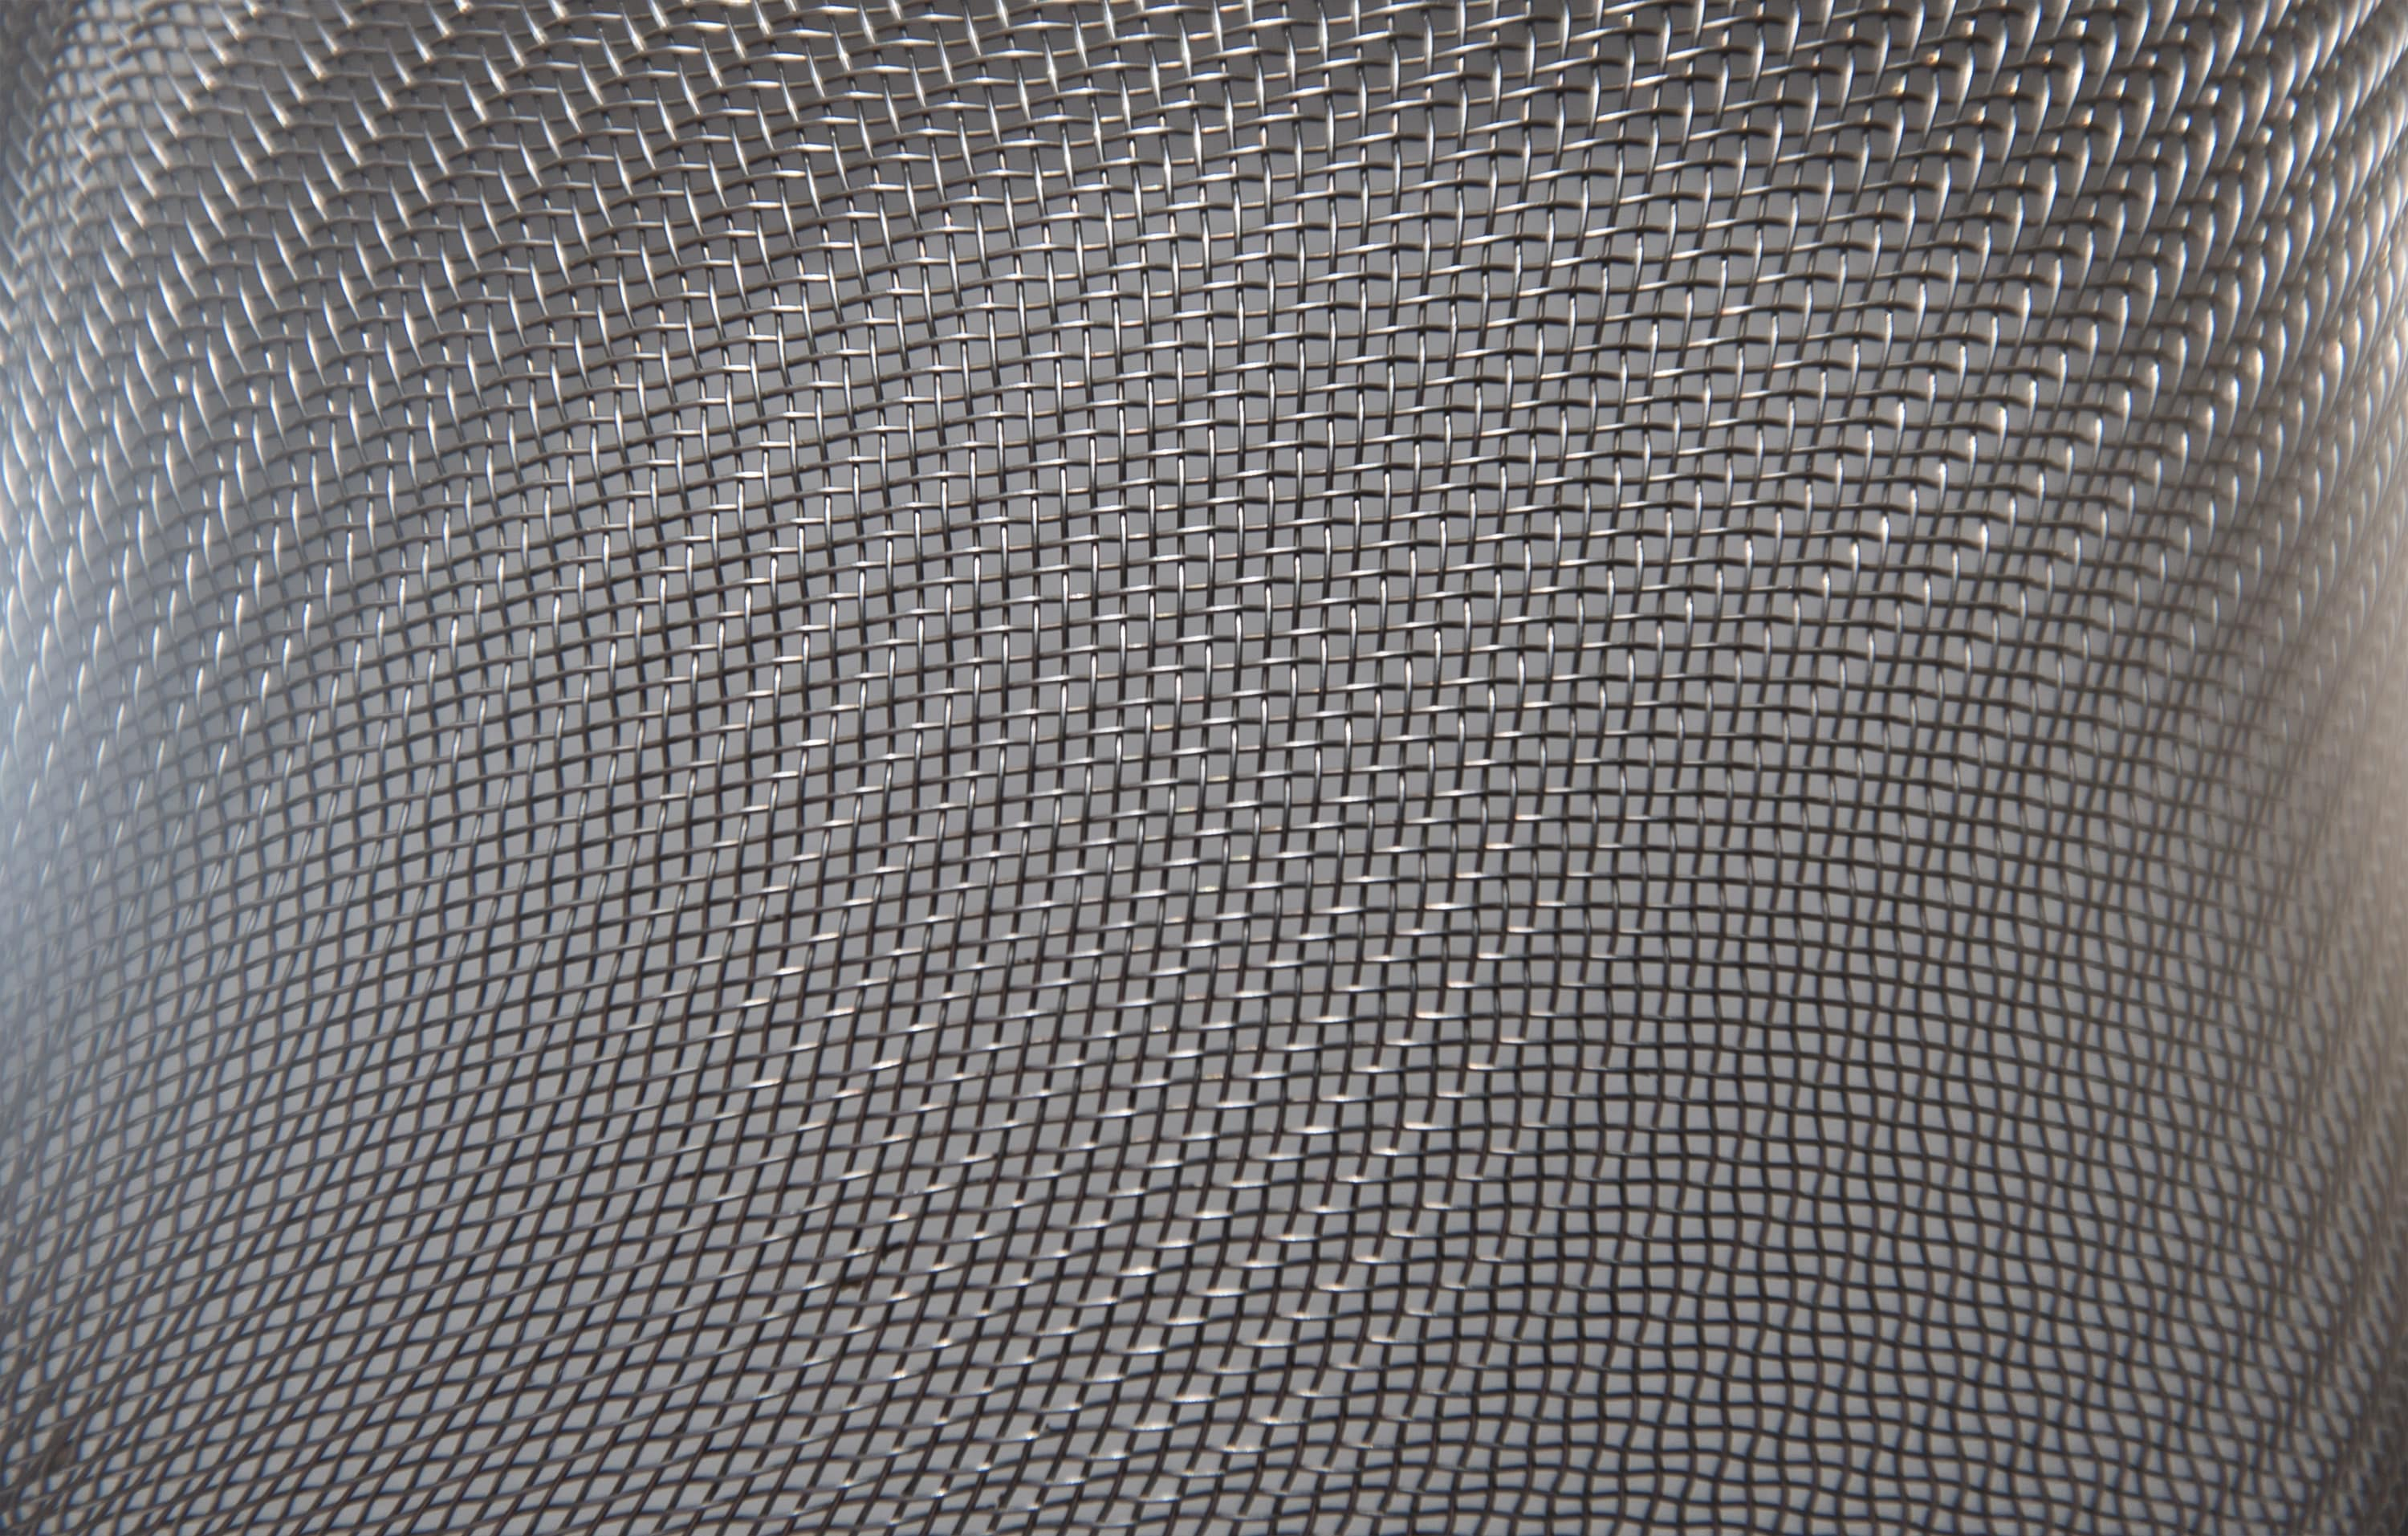 Importance of woven wire mesh for fencing and partitions